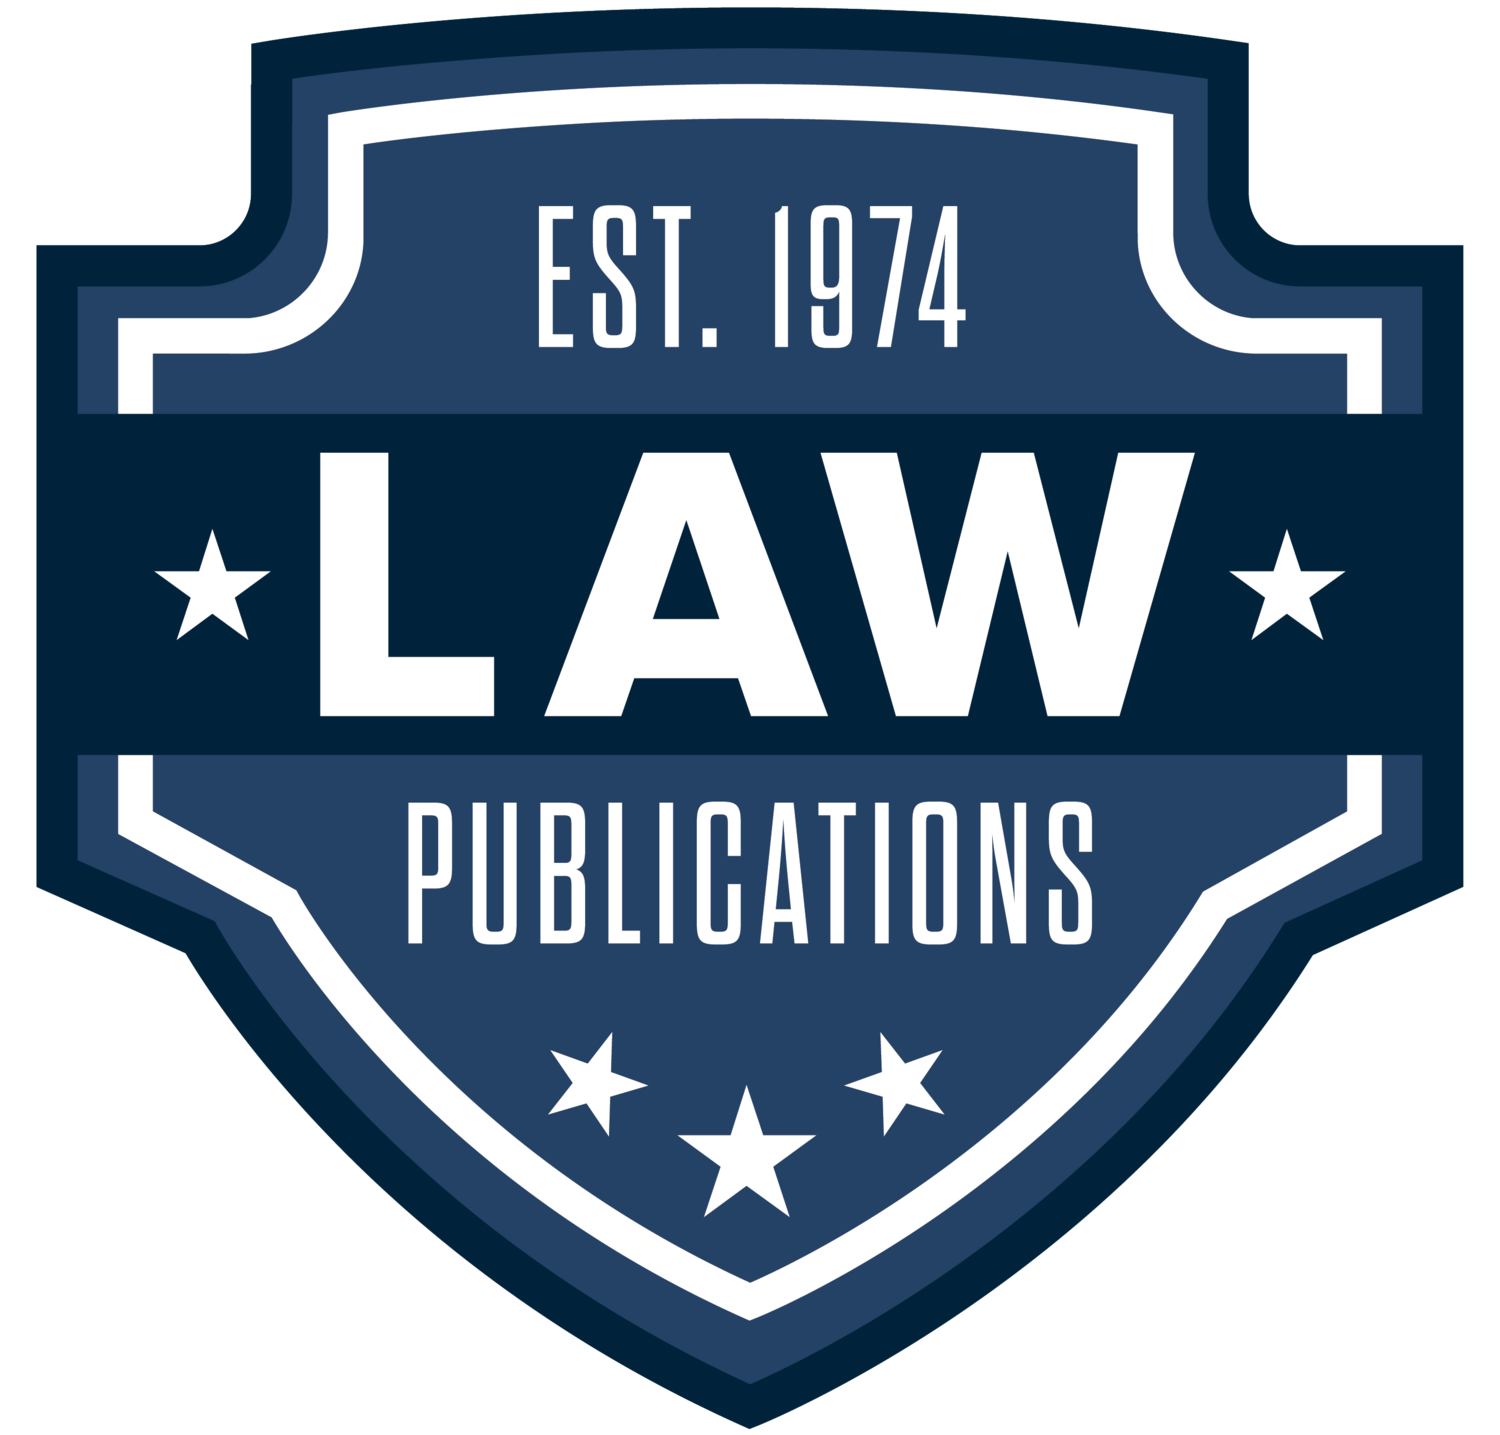 LAW Publications